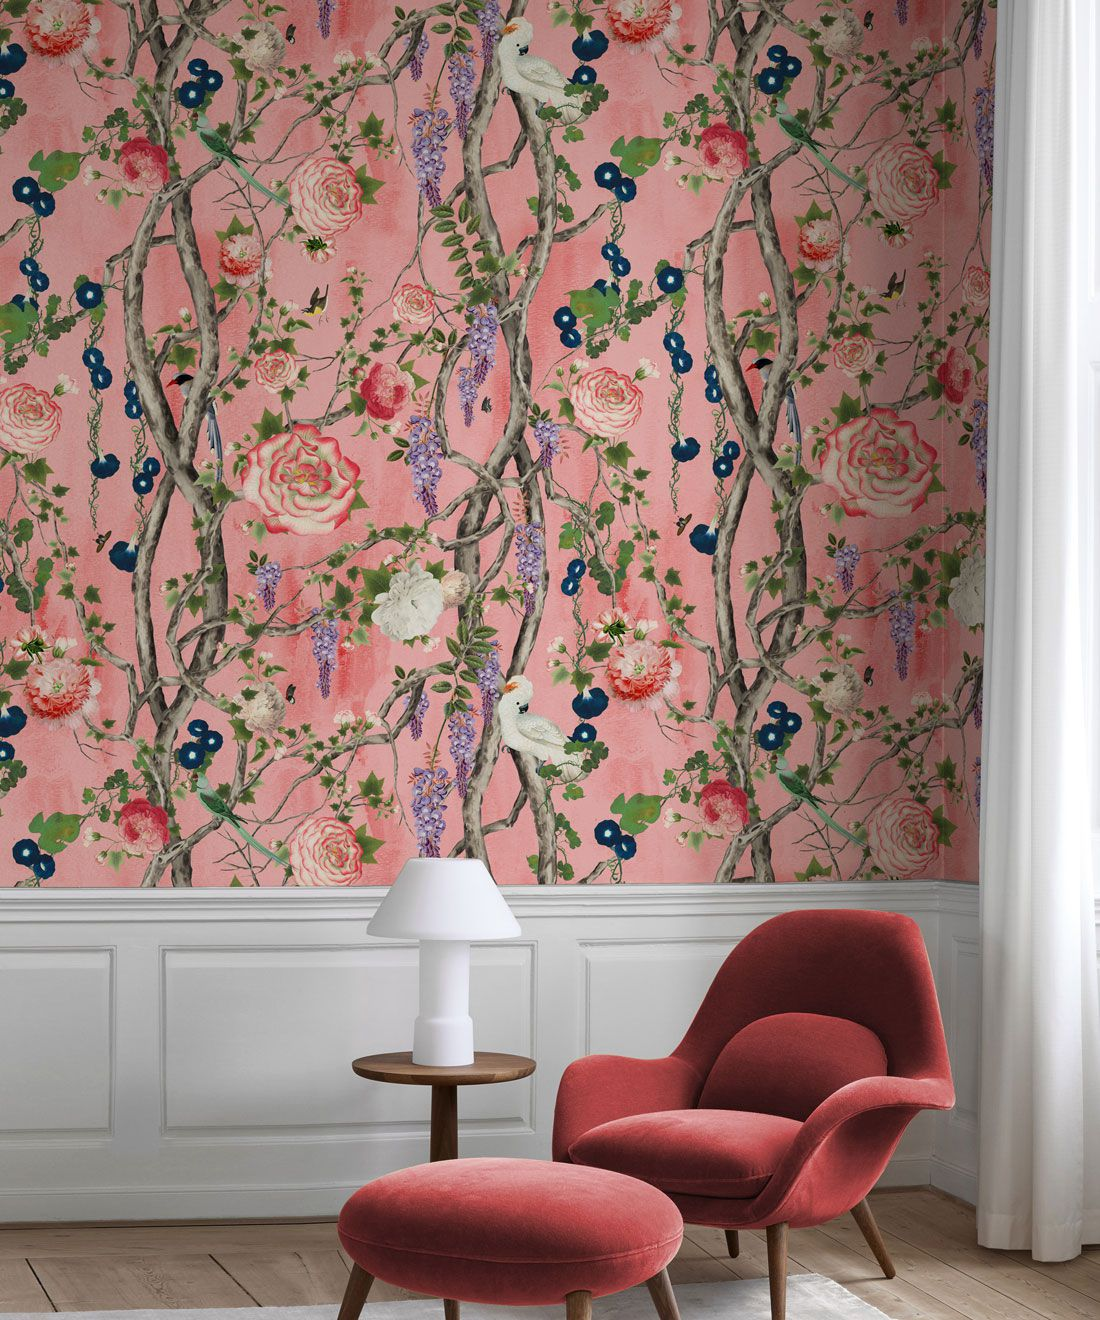 Empress Wallpaper • Romantic Wallpaper • Floral Wallpaper • Chinoiserie Wallpaper • Coral colour wallpaper insitu